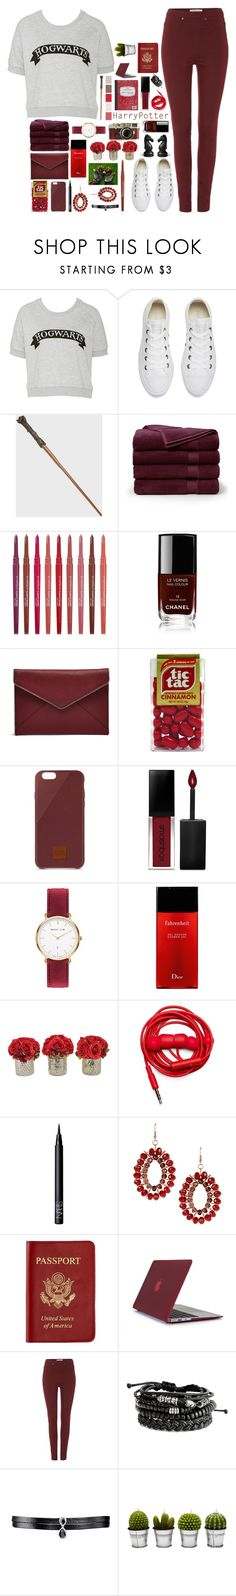 """""""Harry Potter"""" by milkshakes-and-dogs ❤ liked on Polyvore featuring Converse, Brooks Brothers, Smashbox, Chanel, Rebecca Minkoff, Native Union, Abbott Lyon, Leica, Christian Dior and The French Bee"""